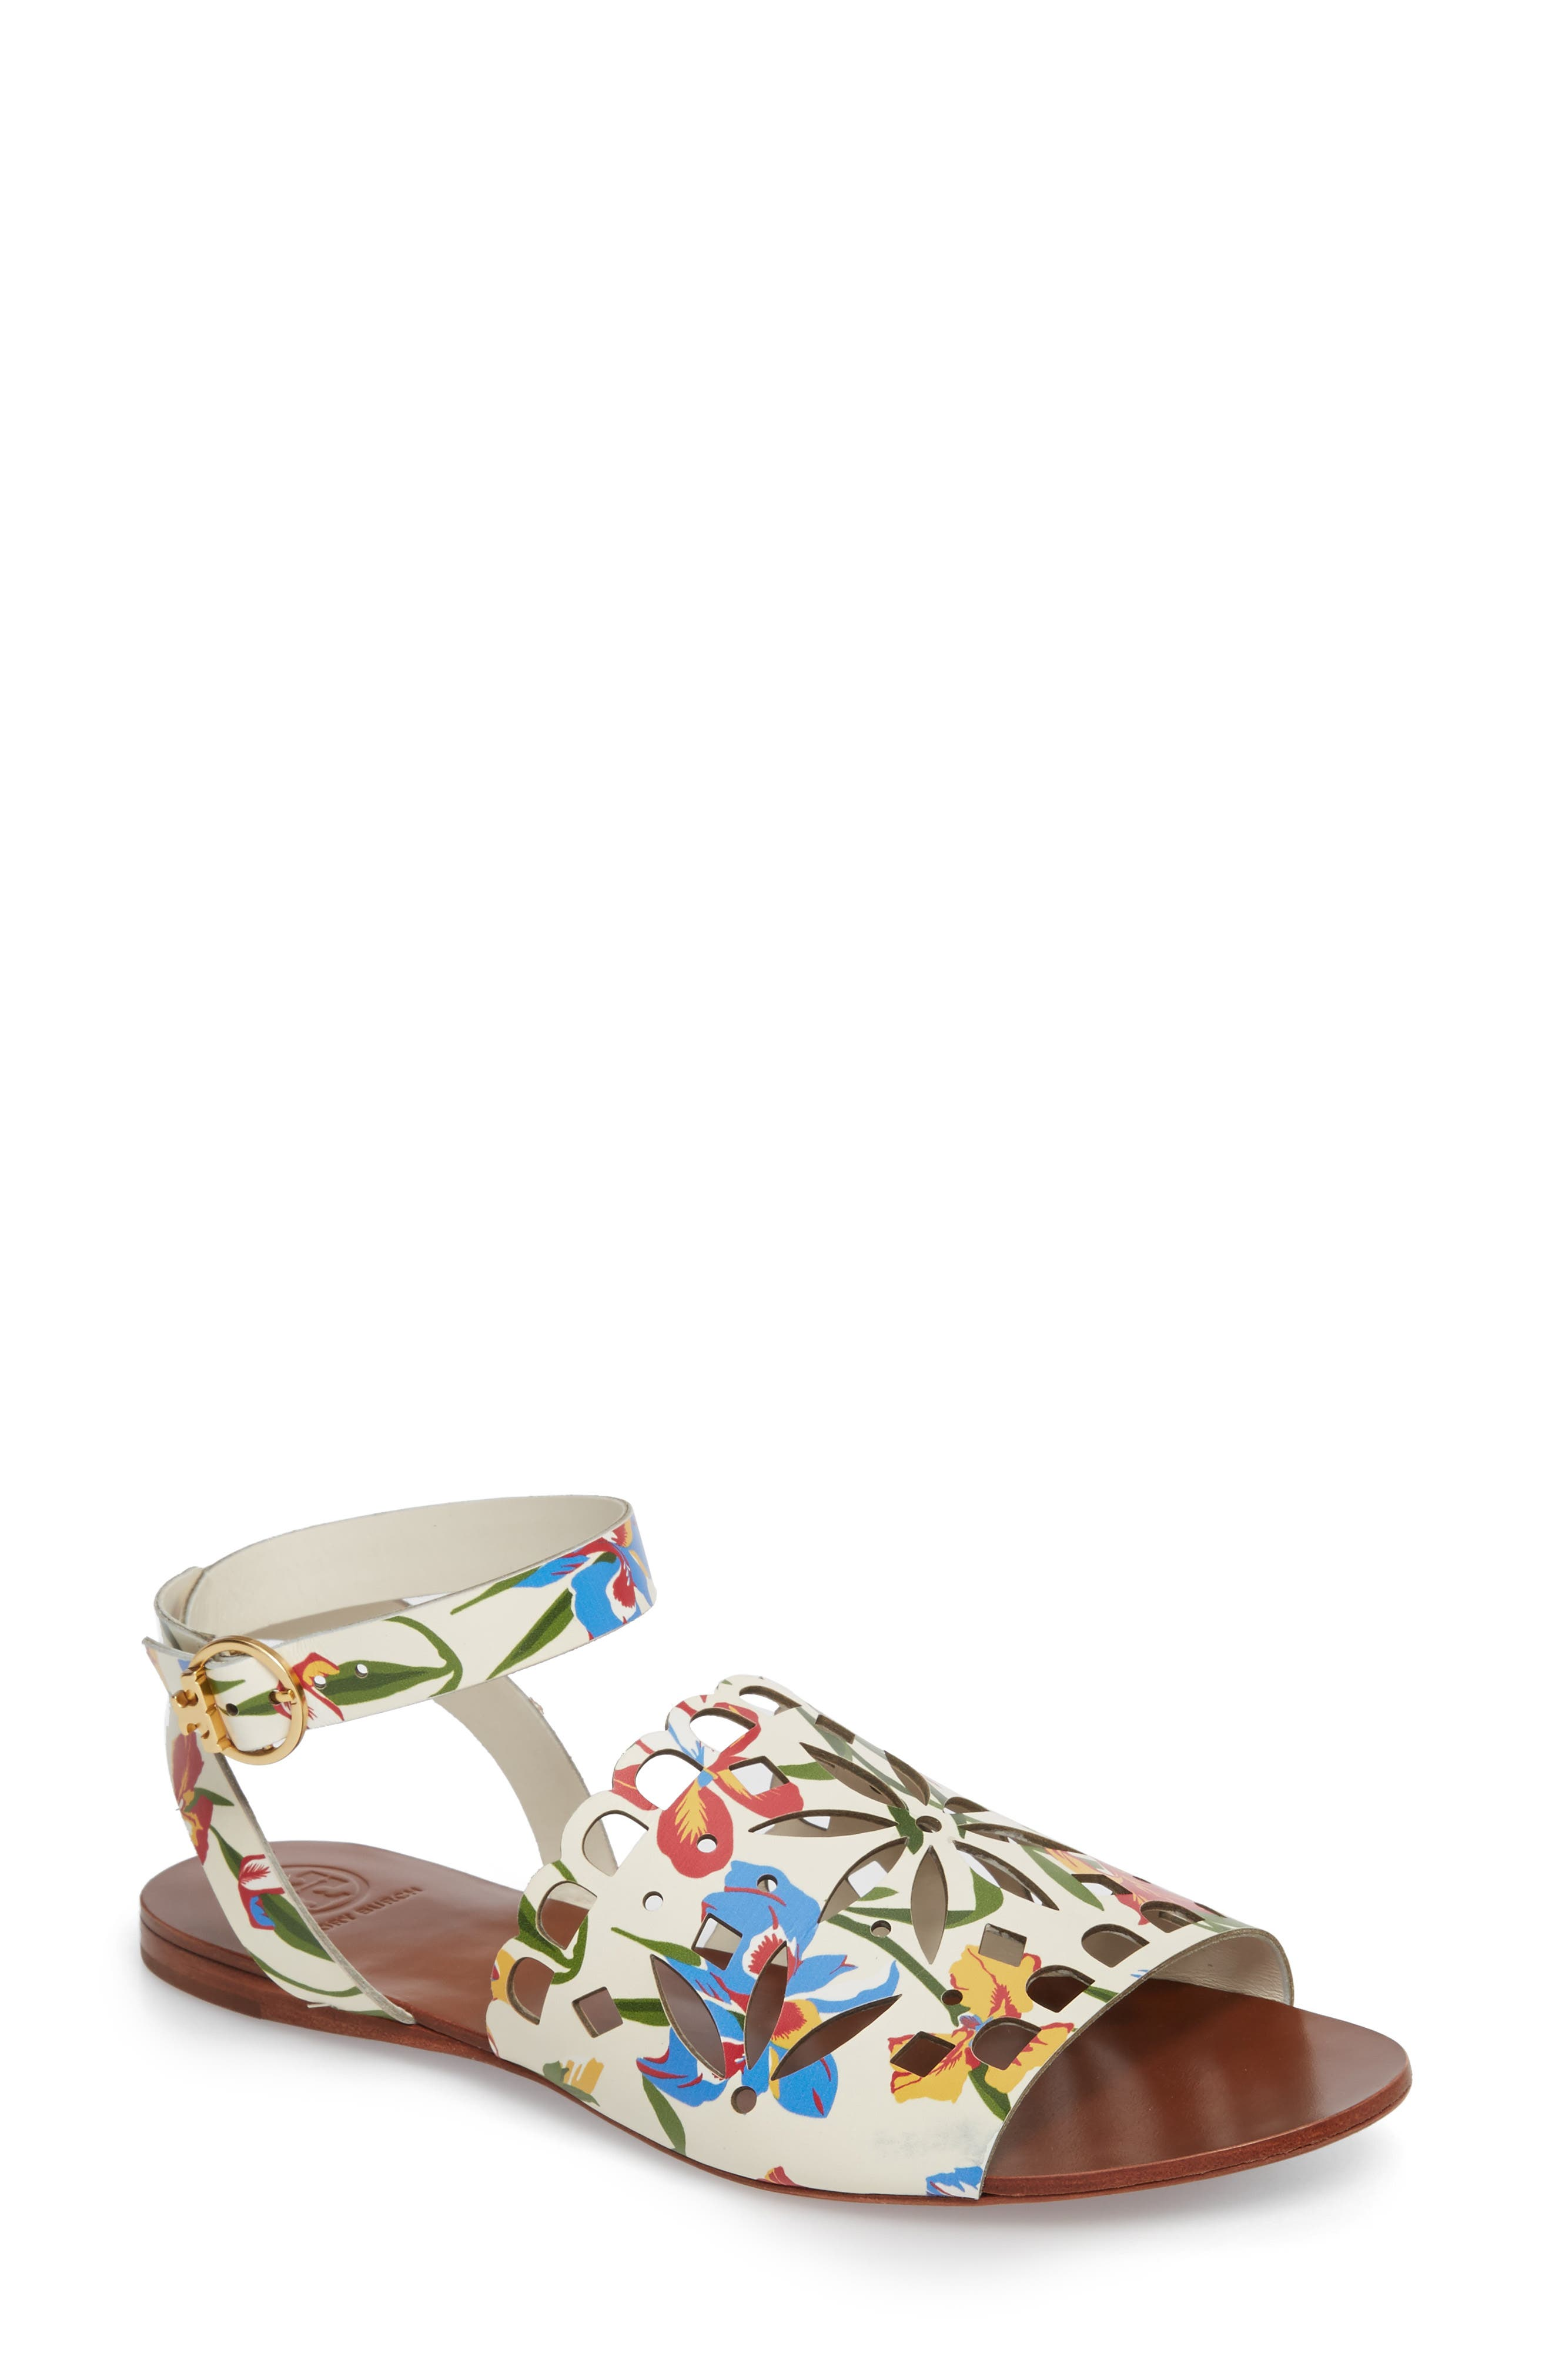 May Printed Floral Ankle Strap Sandal,                             Main thumbnail 1, color,                             100